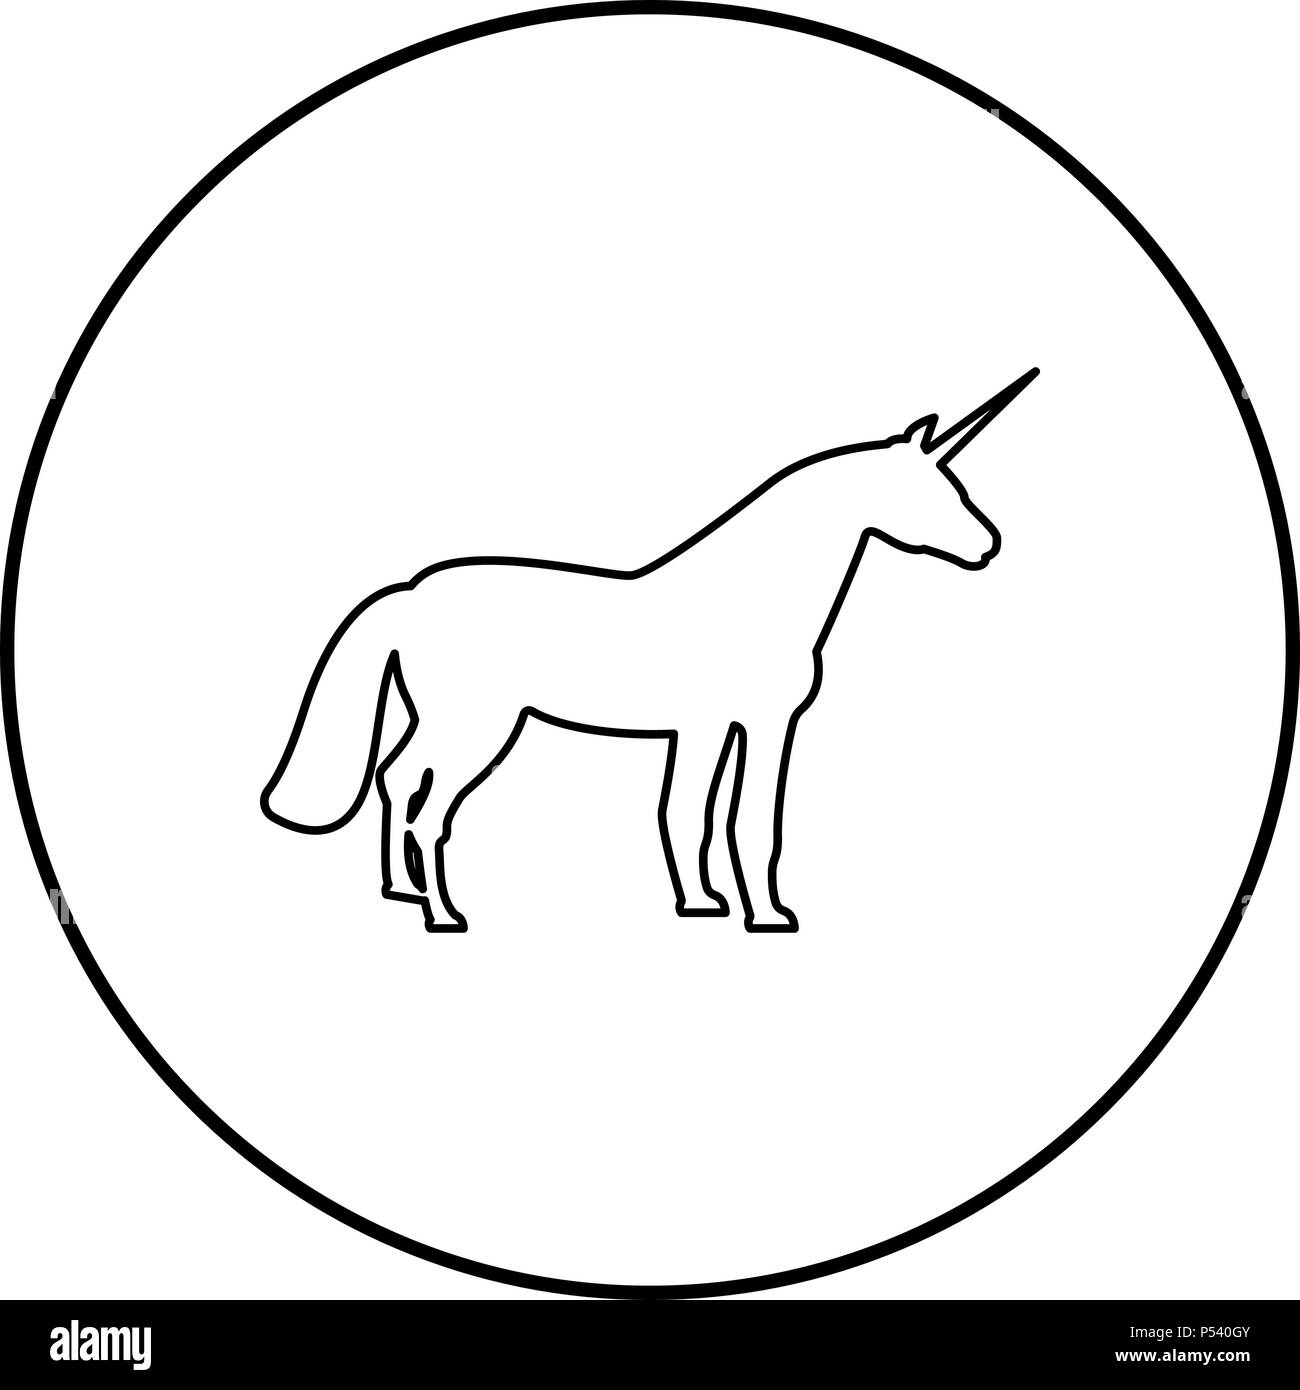 Unicorn icon black color in circle round outline - Stock Vector